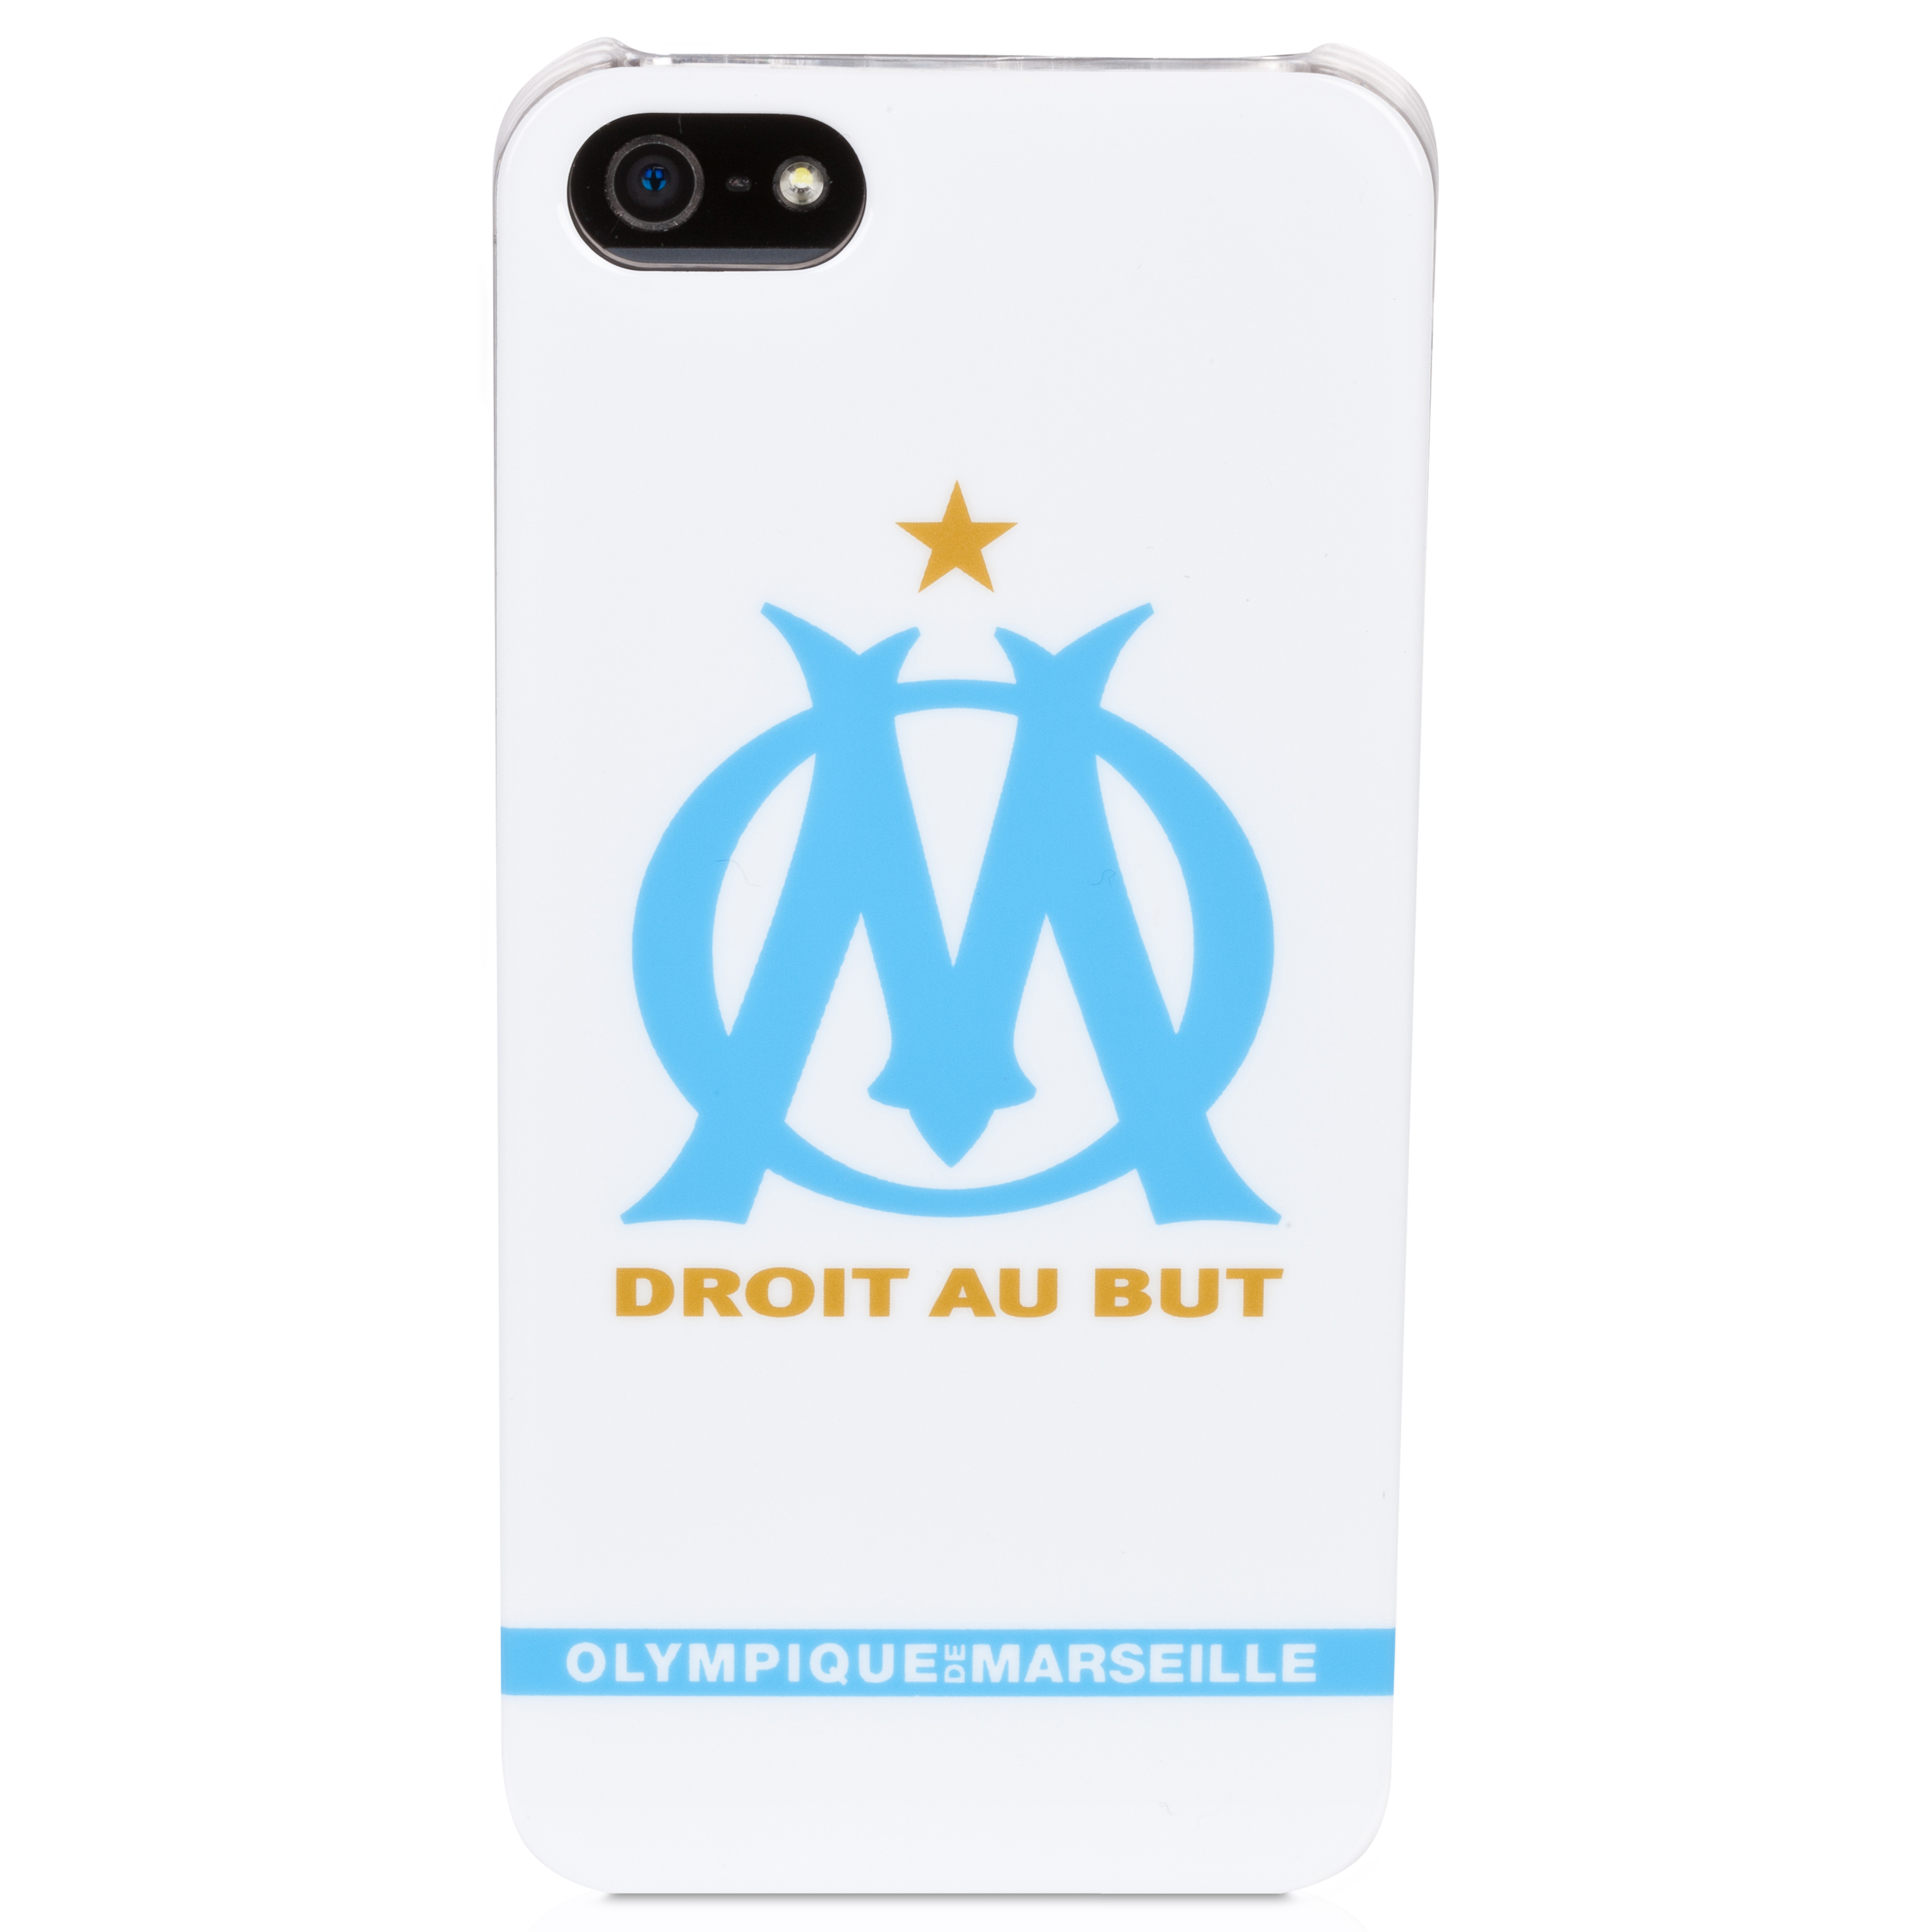 Olympique de Marseille Iphone 5 Hard Case